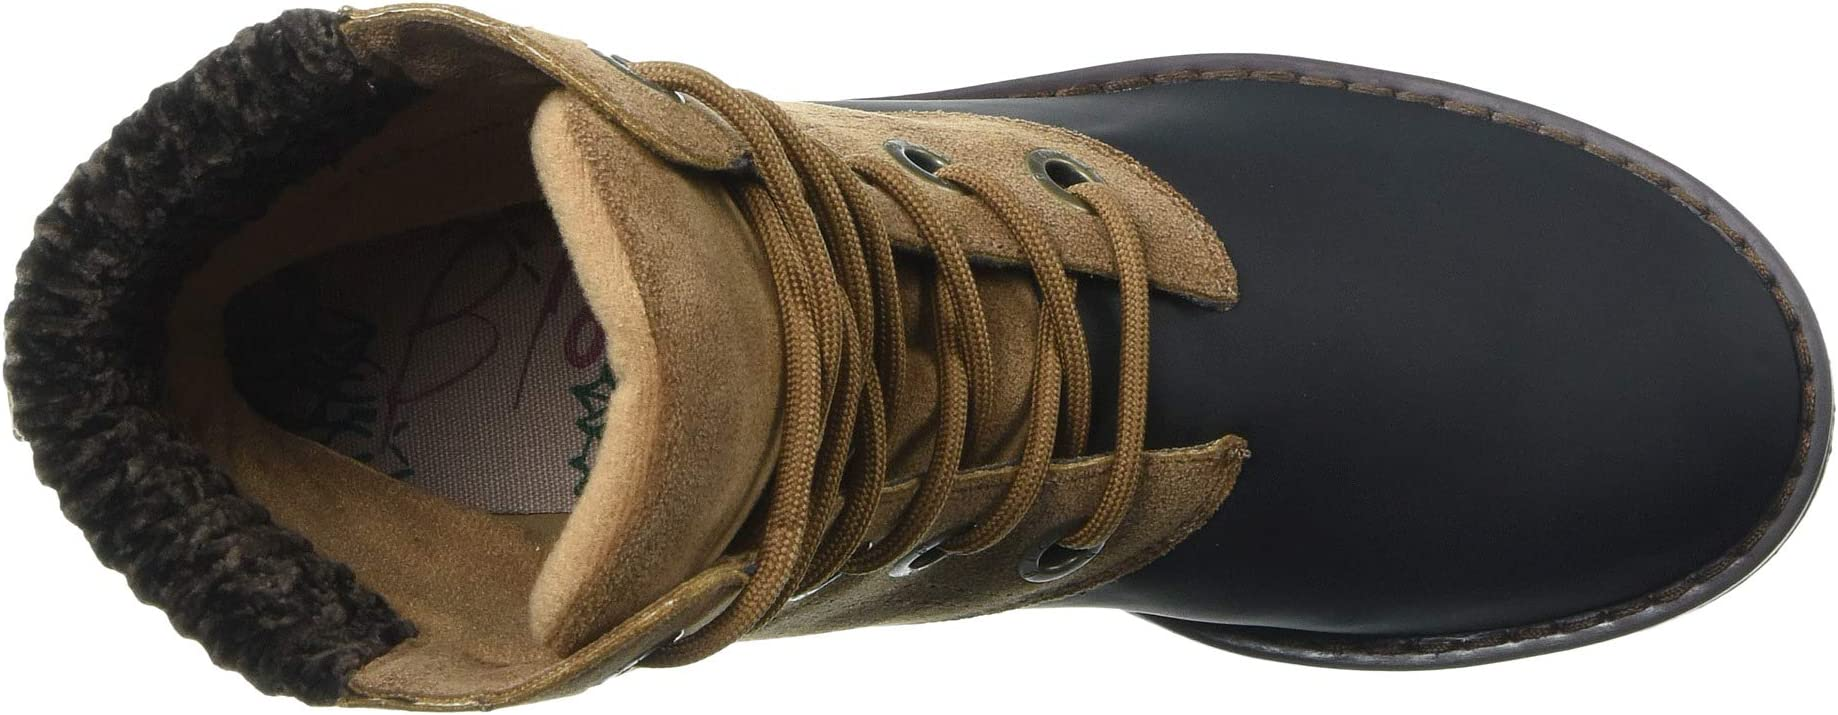 Blowfish Cabrillo | Women's shoes | 2020 Newest